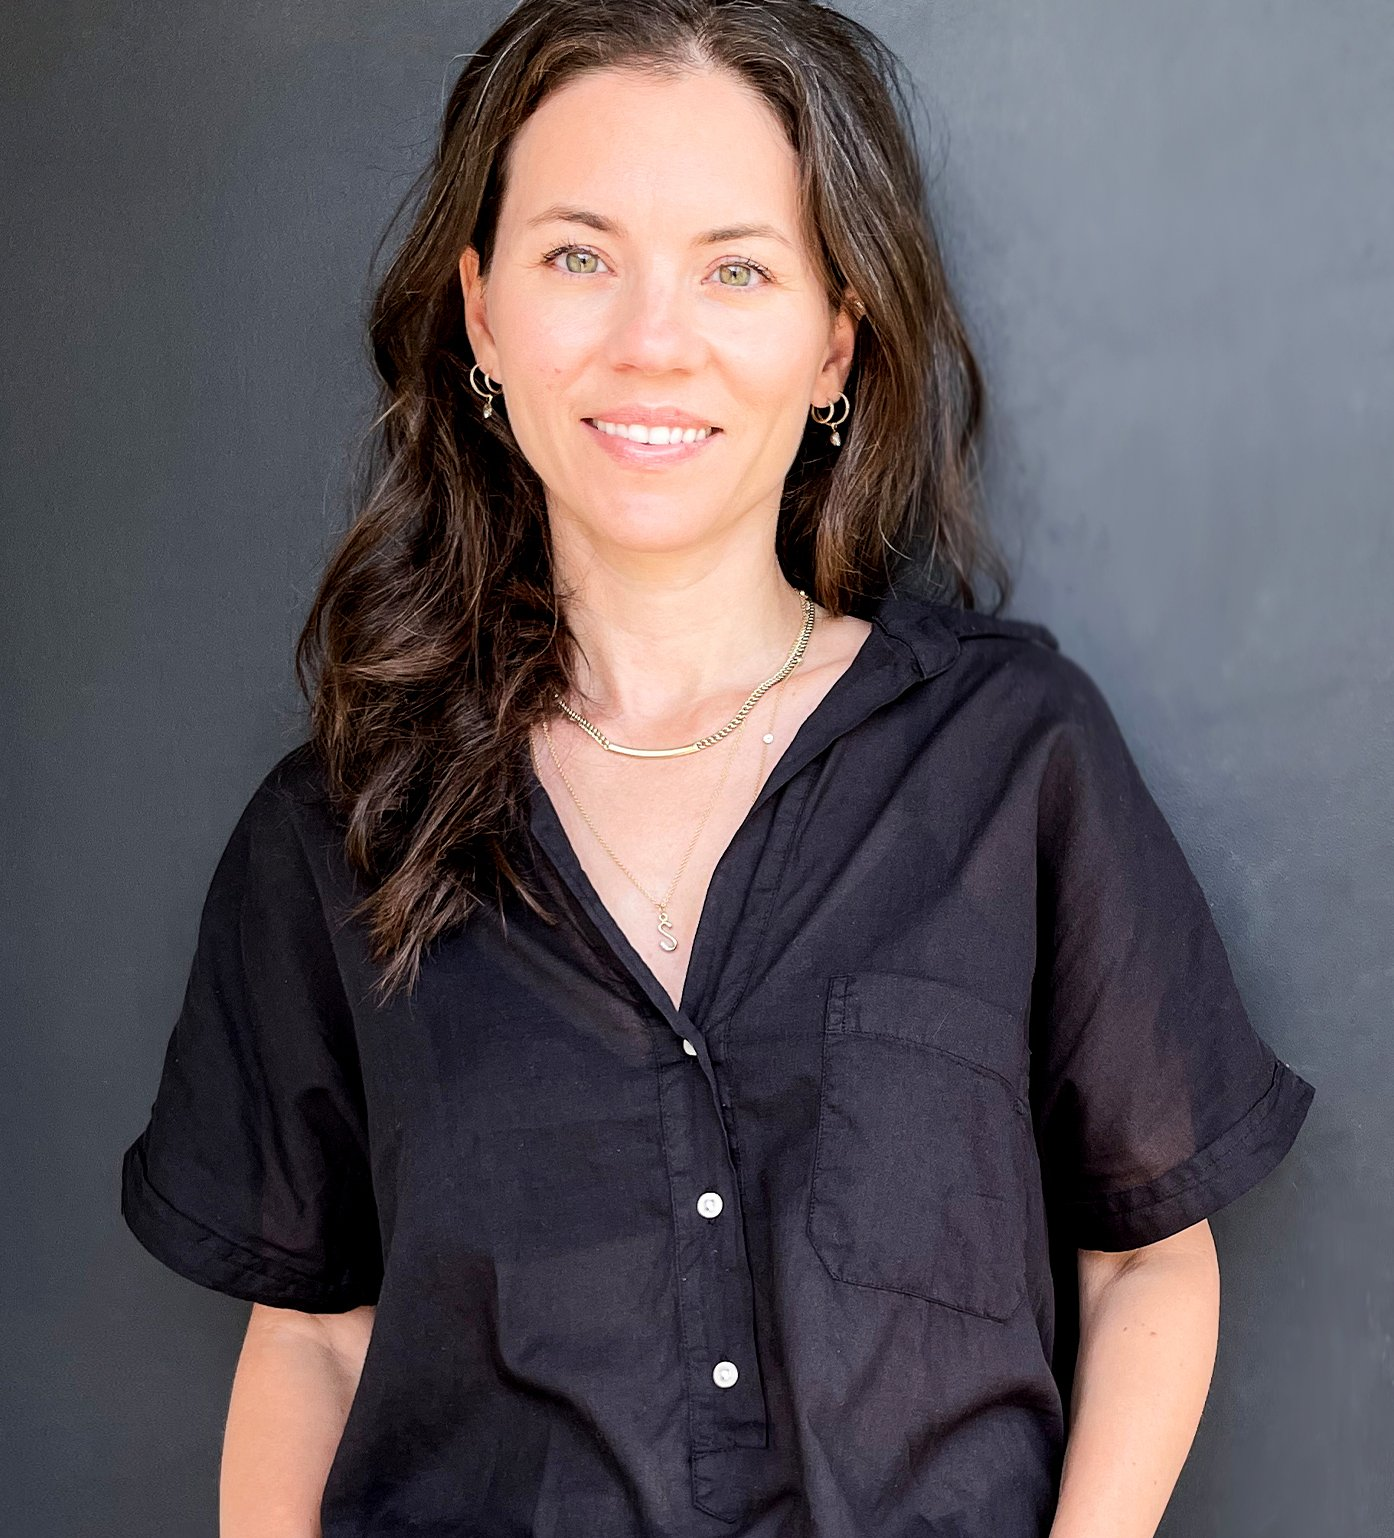 Portrait of Stacy Nolan. She has fair skin, light eyes, and nearly black hair. She is wearing a delicate chain necklace over a collared shirt with a deep neckline.